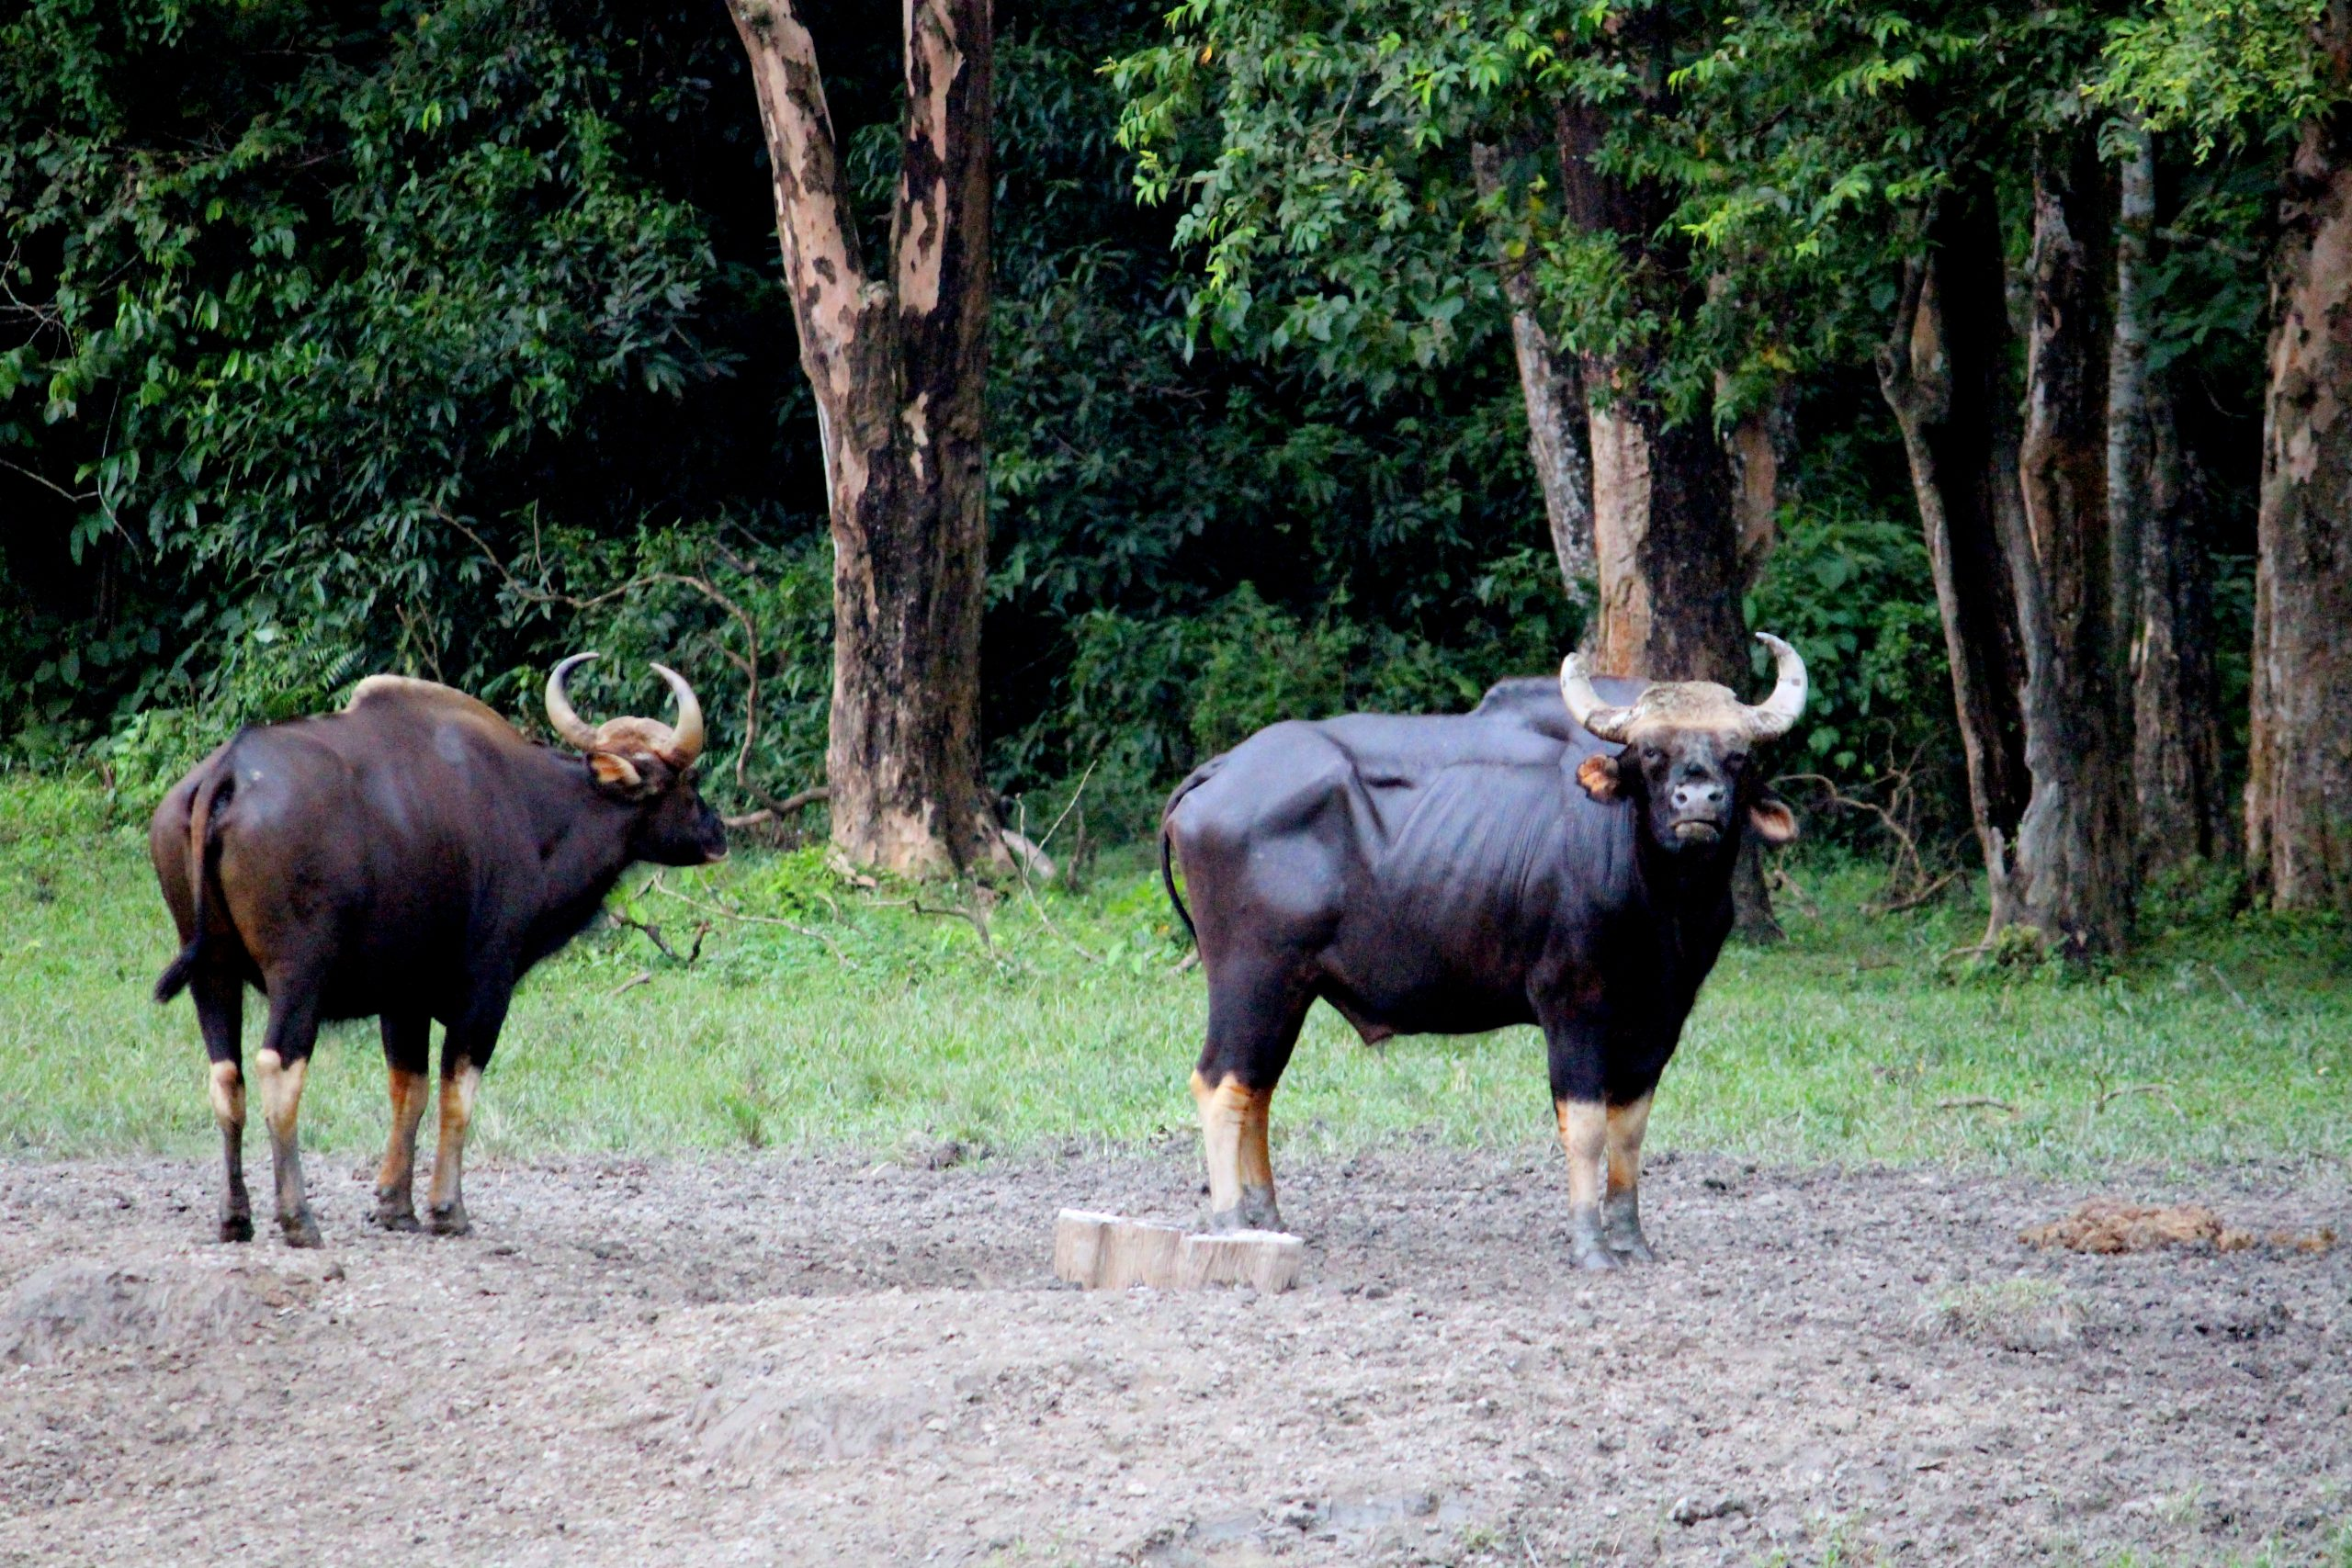 Hollong guest house bison